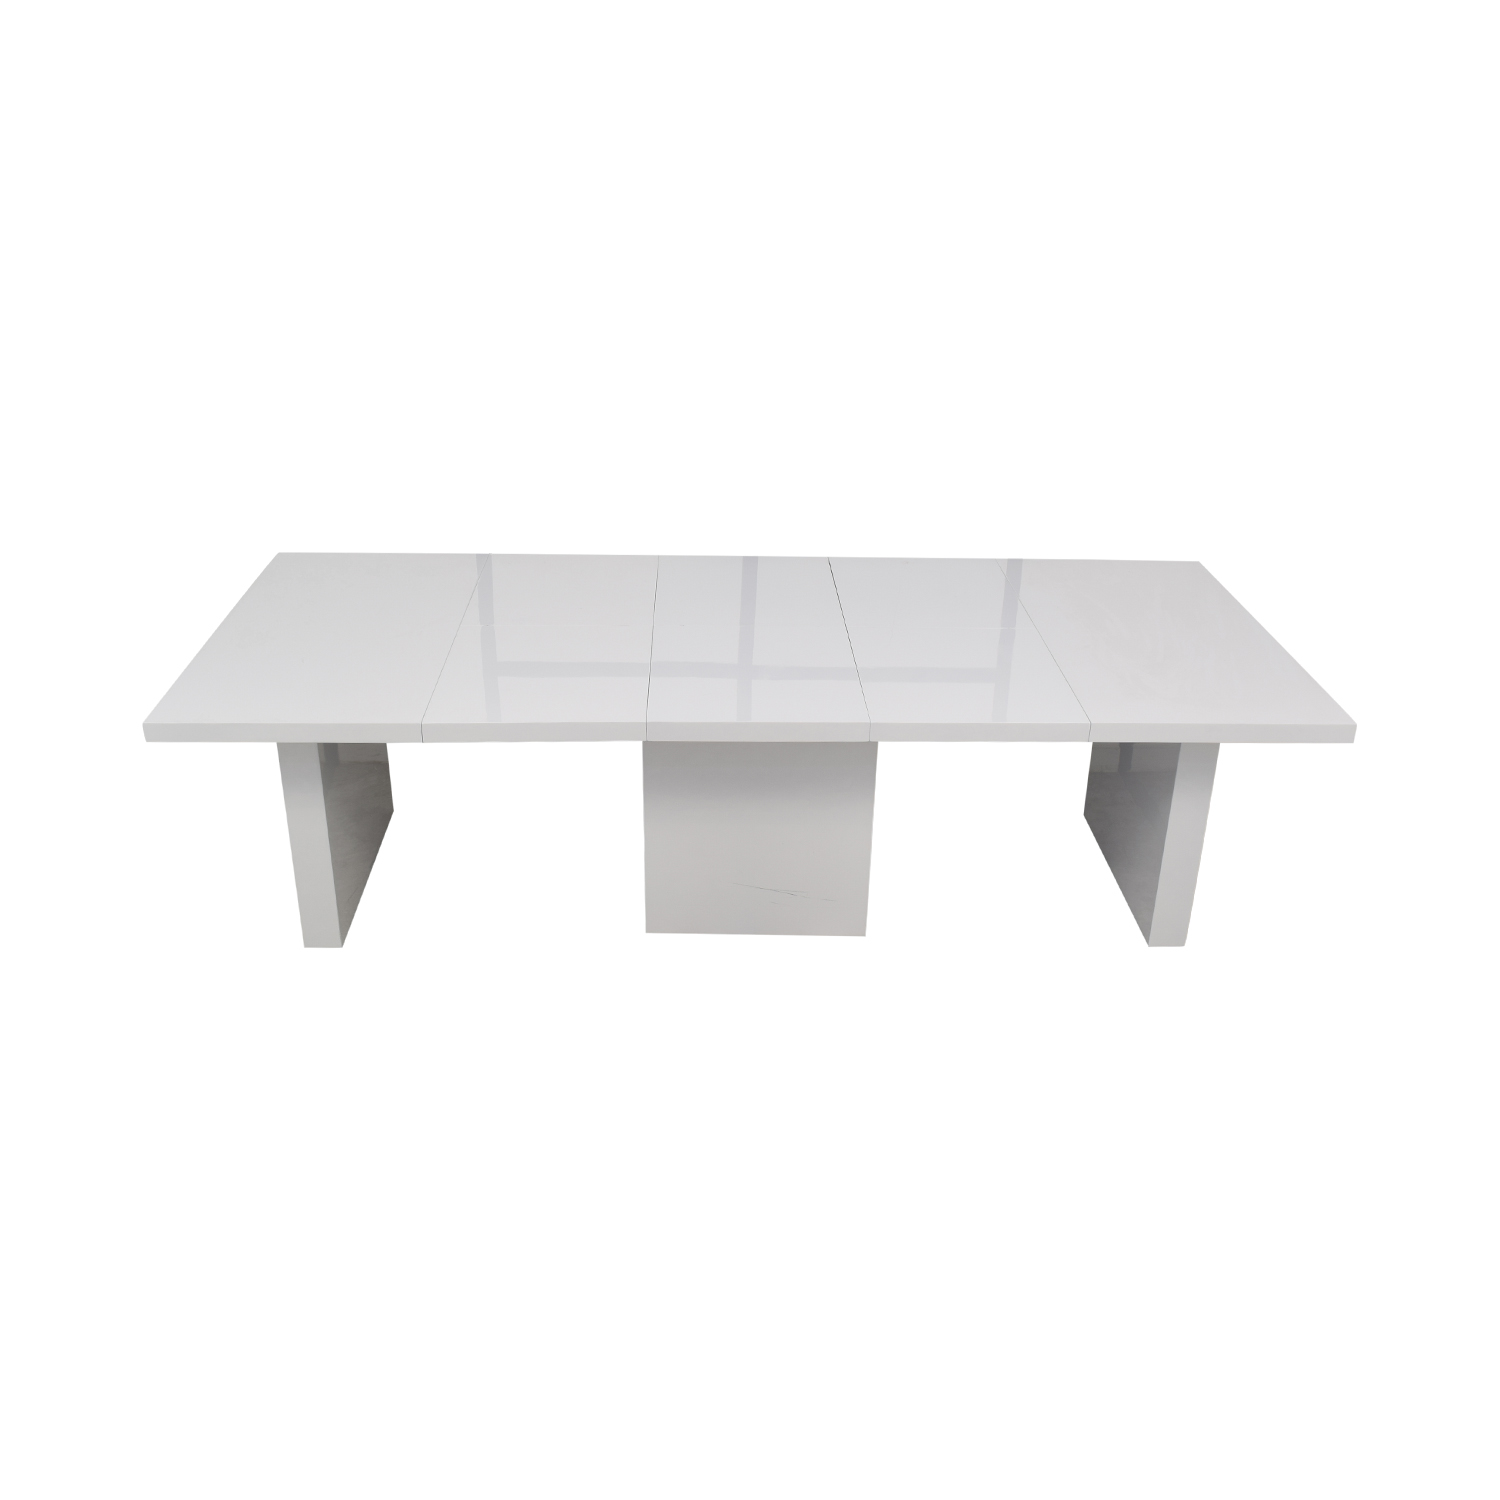 Orren Ellis Stotfold White Extendable Table / Dinner Tables